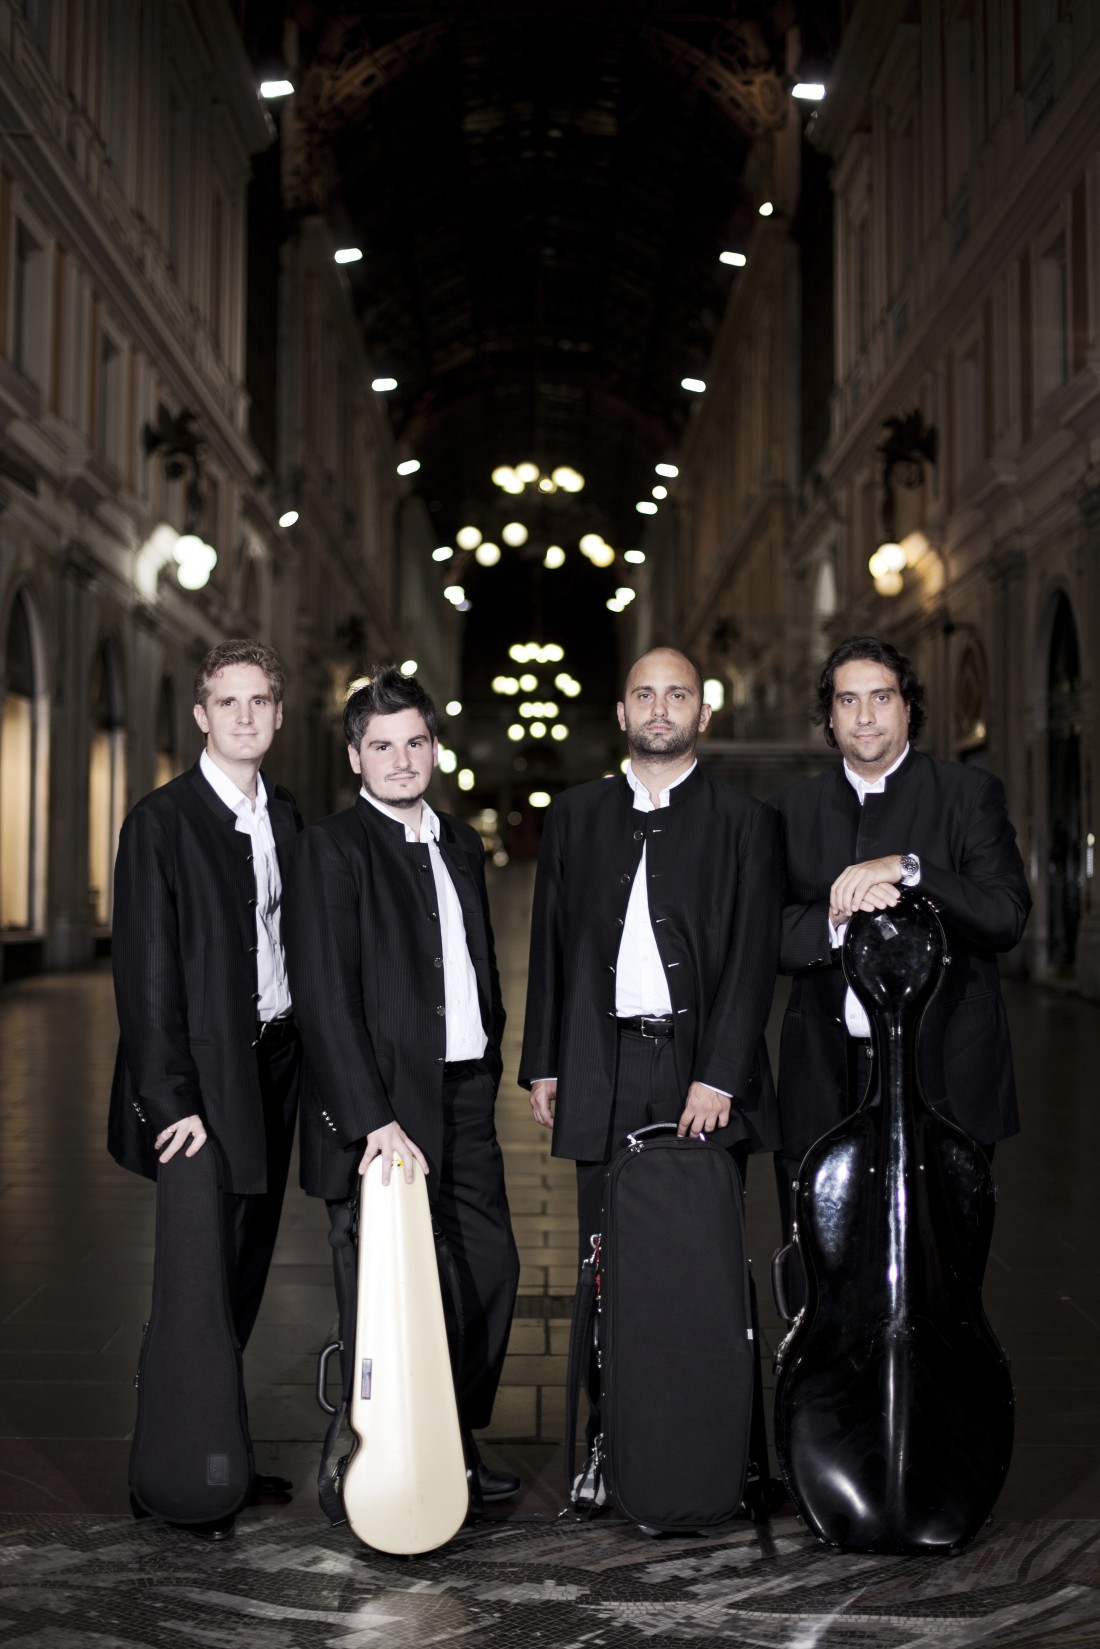 Quartetto di Cremona perform at Lancaster University's Great Hall on 6 February 2014.